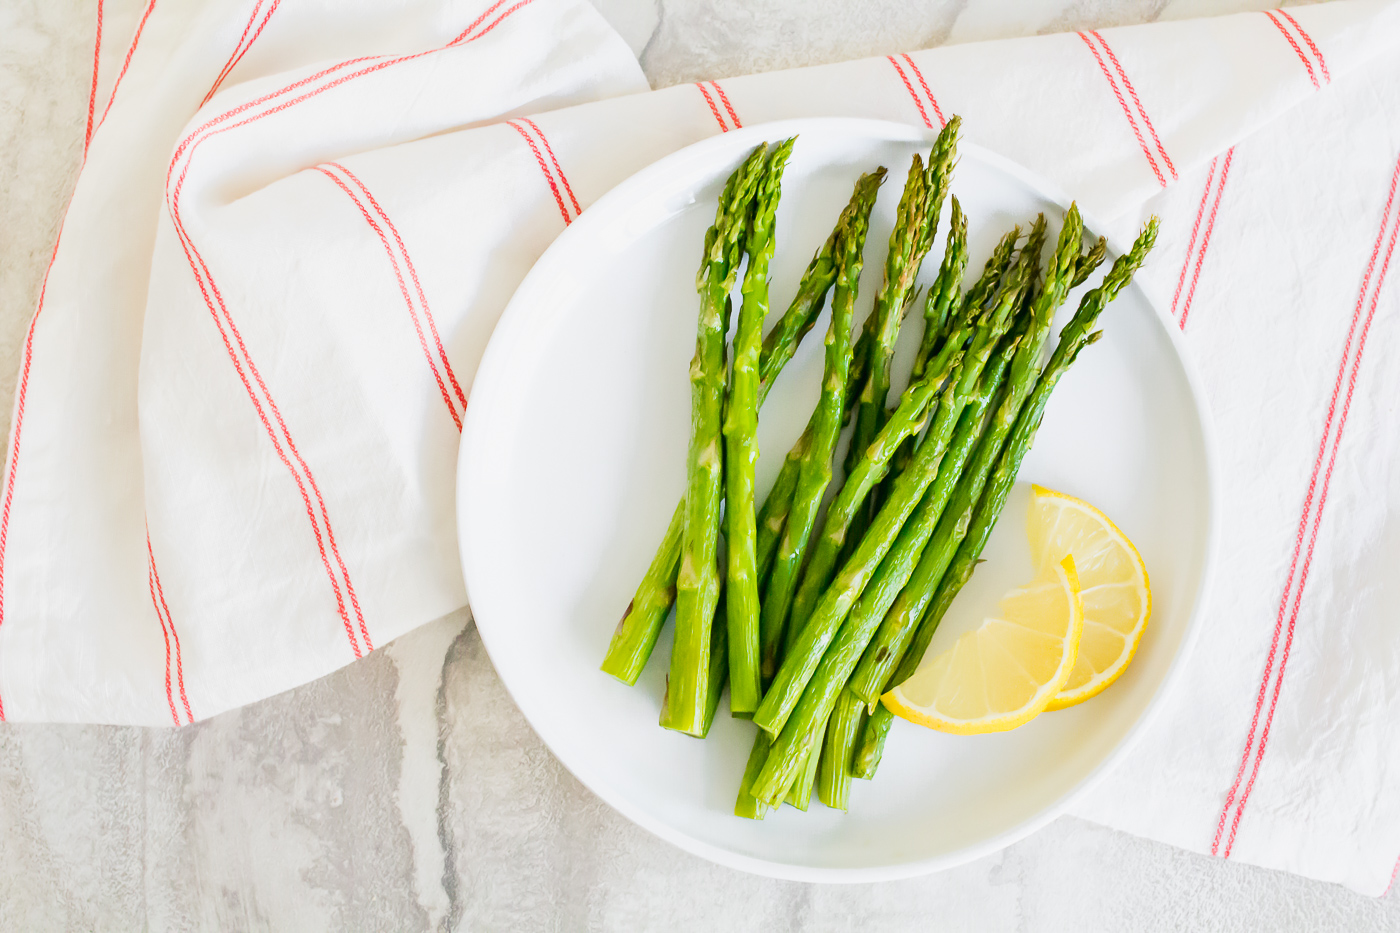 overhead shot of cooked air fryer asparagus on a white plate on top of a white and red striped napkin